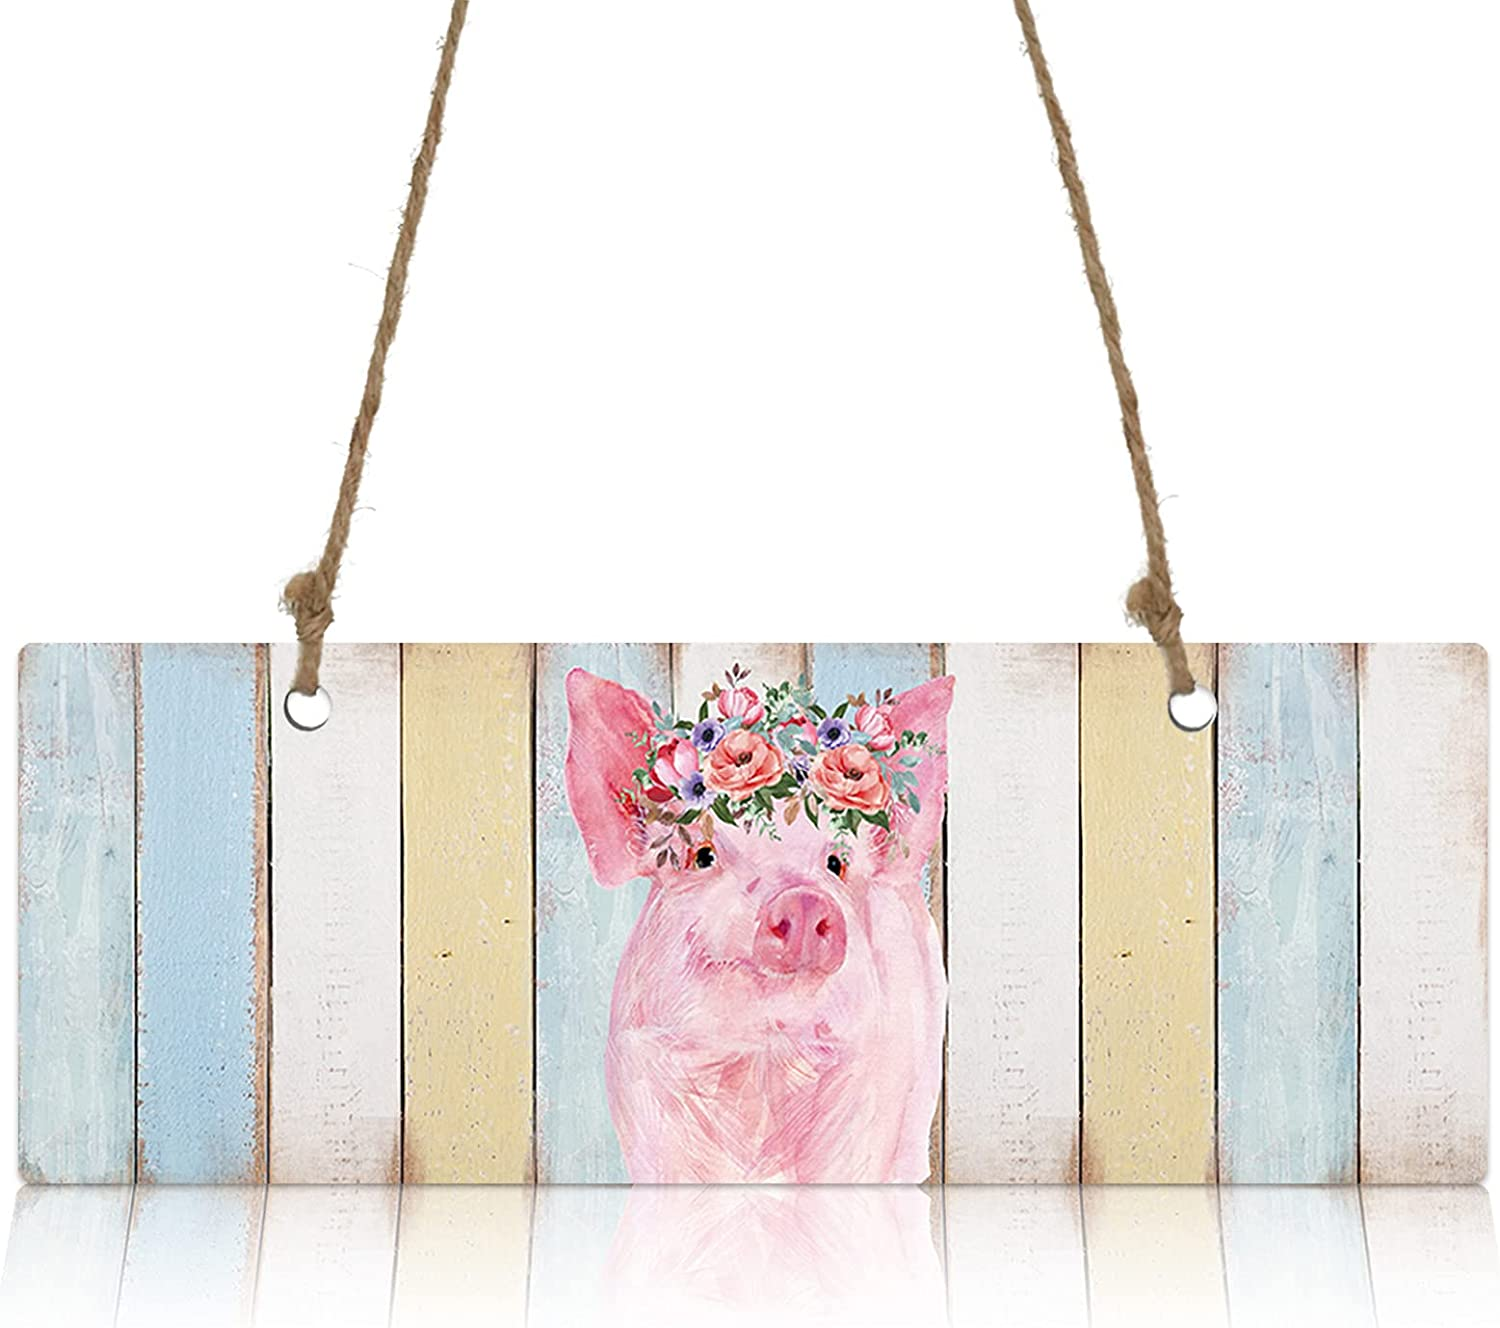 Wall Max 40% OFF Sign Wood Plaque Watercolor Farm Floral OFFicial mail order Pig and Wreath Pink